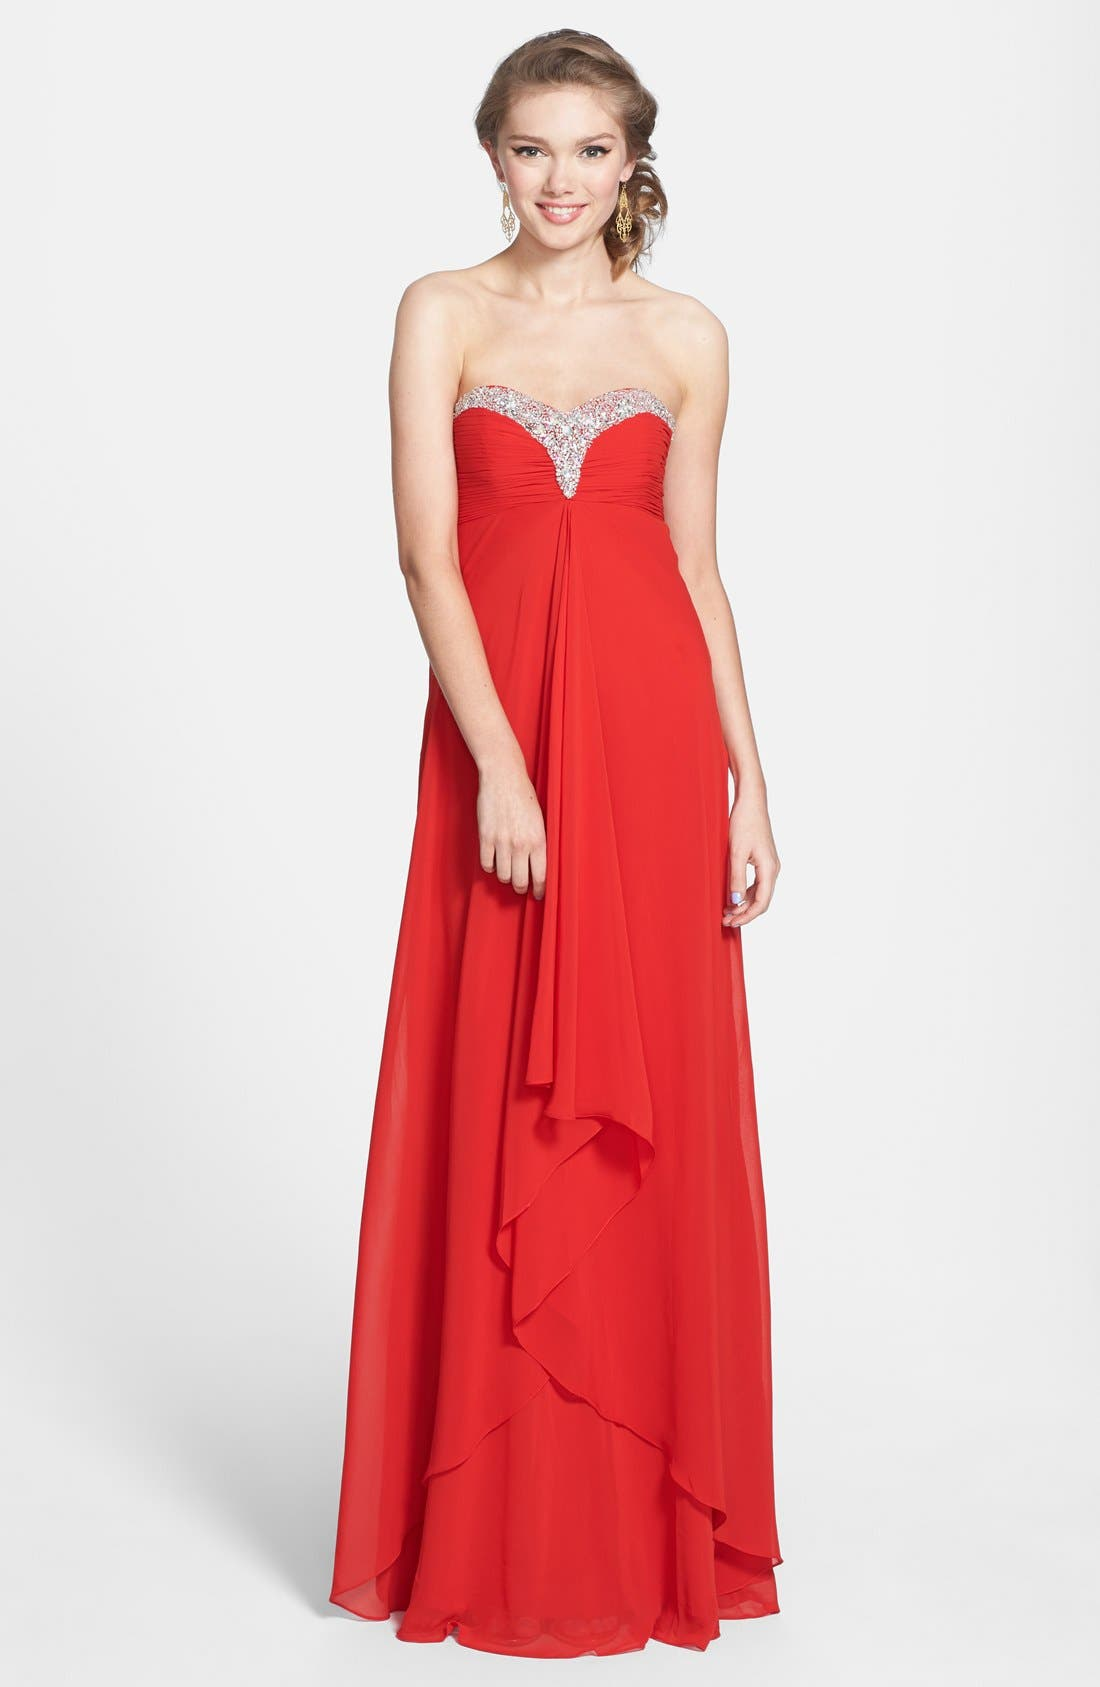 Alternate Image 1 Selected - Faviana Jeweled Layered Chiffon Gown (Online Exclusive)